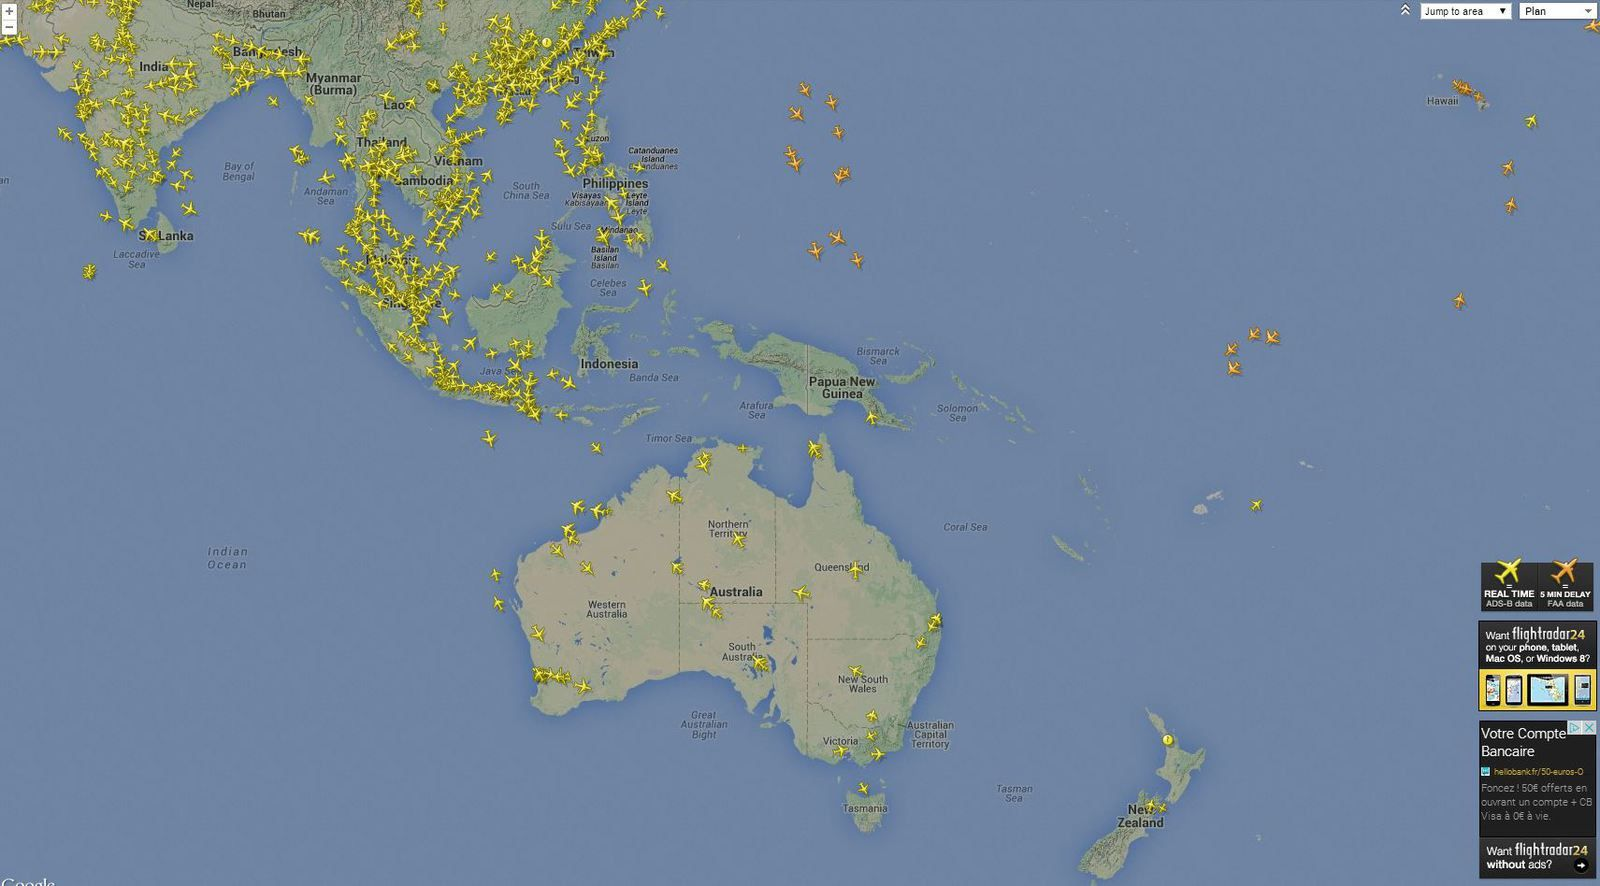 Flightradar24 is the best live flight tracker that shows air traffic in real time. Best coverage and cool features!